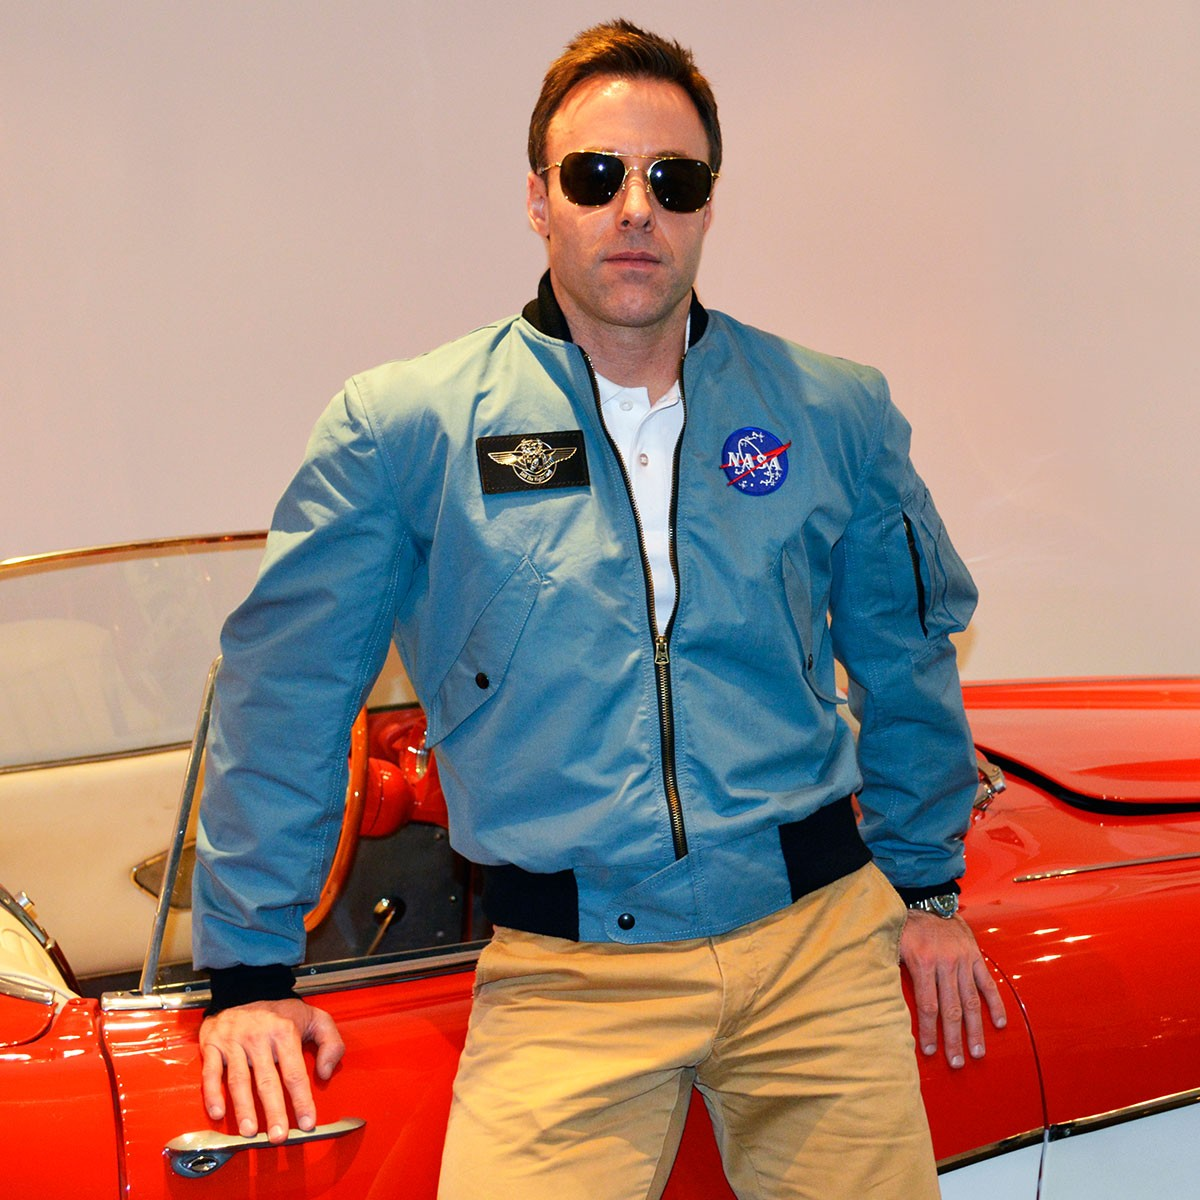 apollo era flight jacket - photo #1